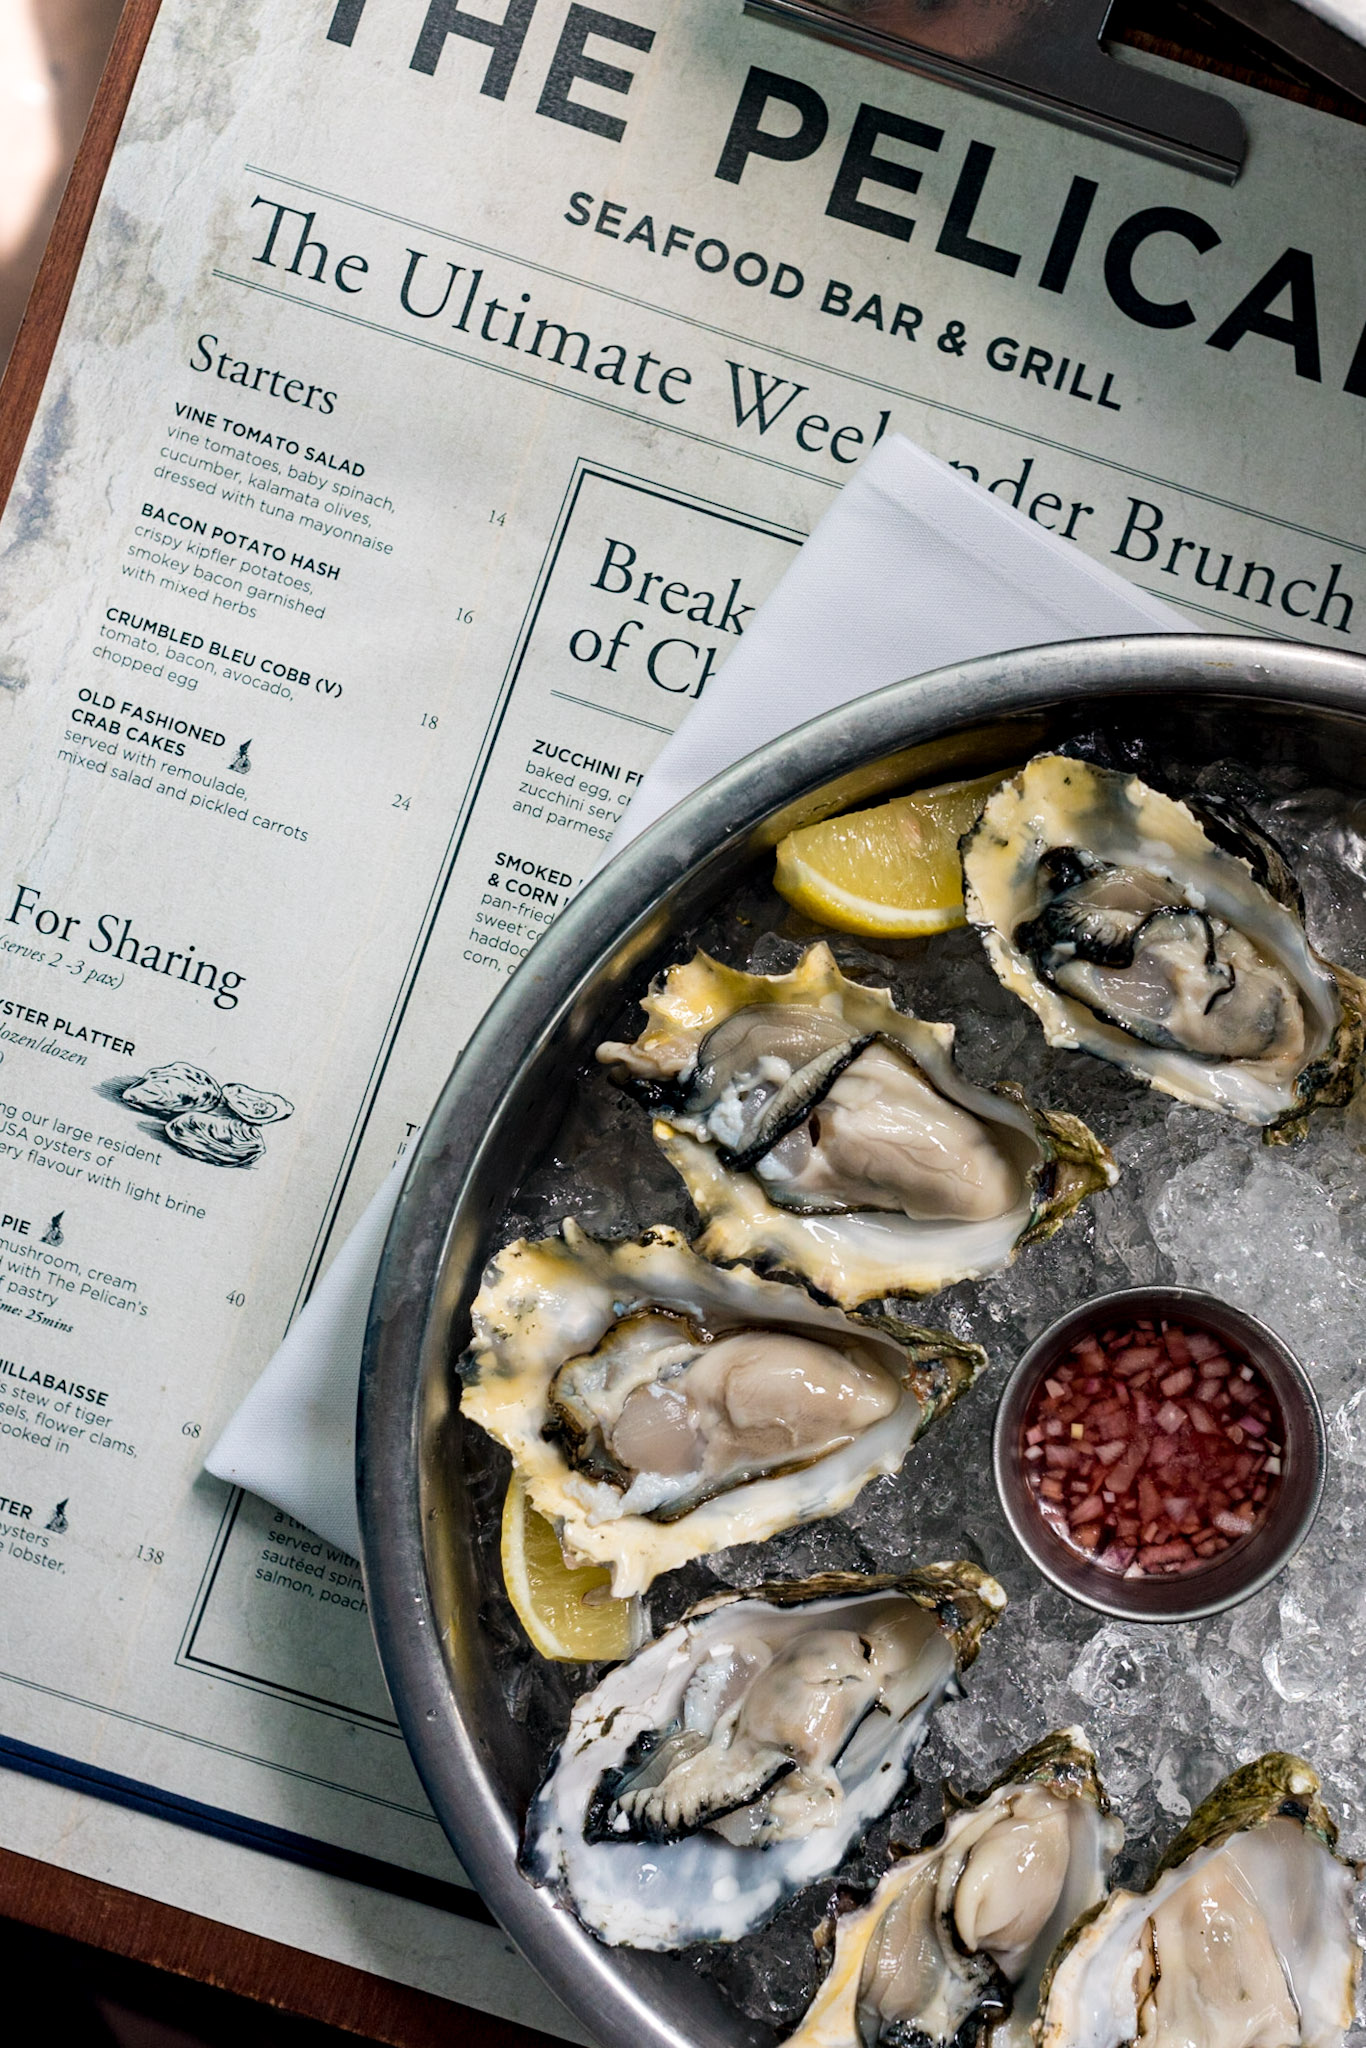 Oyster Platter (S$30++ for 6 | S$60++ for 12)  Saturday Brunch - The Pelican Seafood Bar & Grill